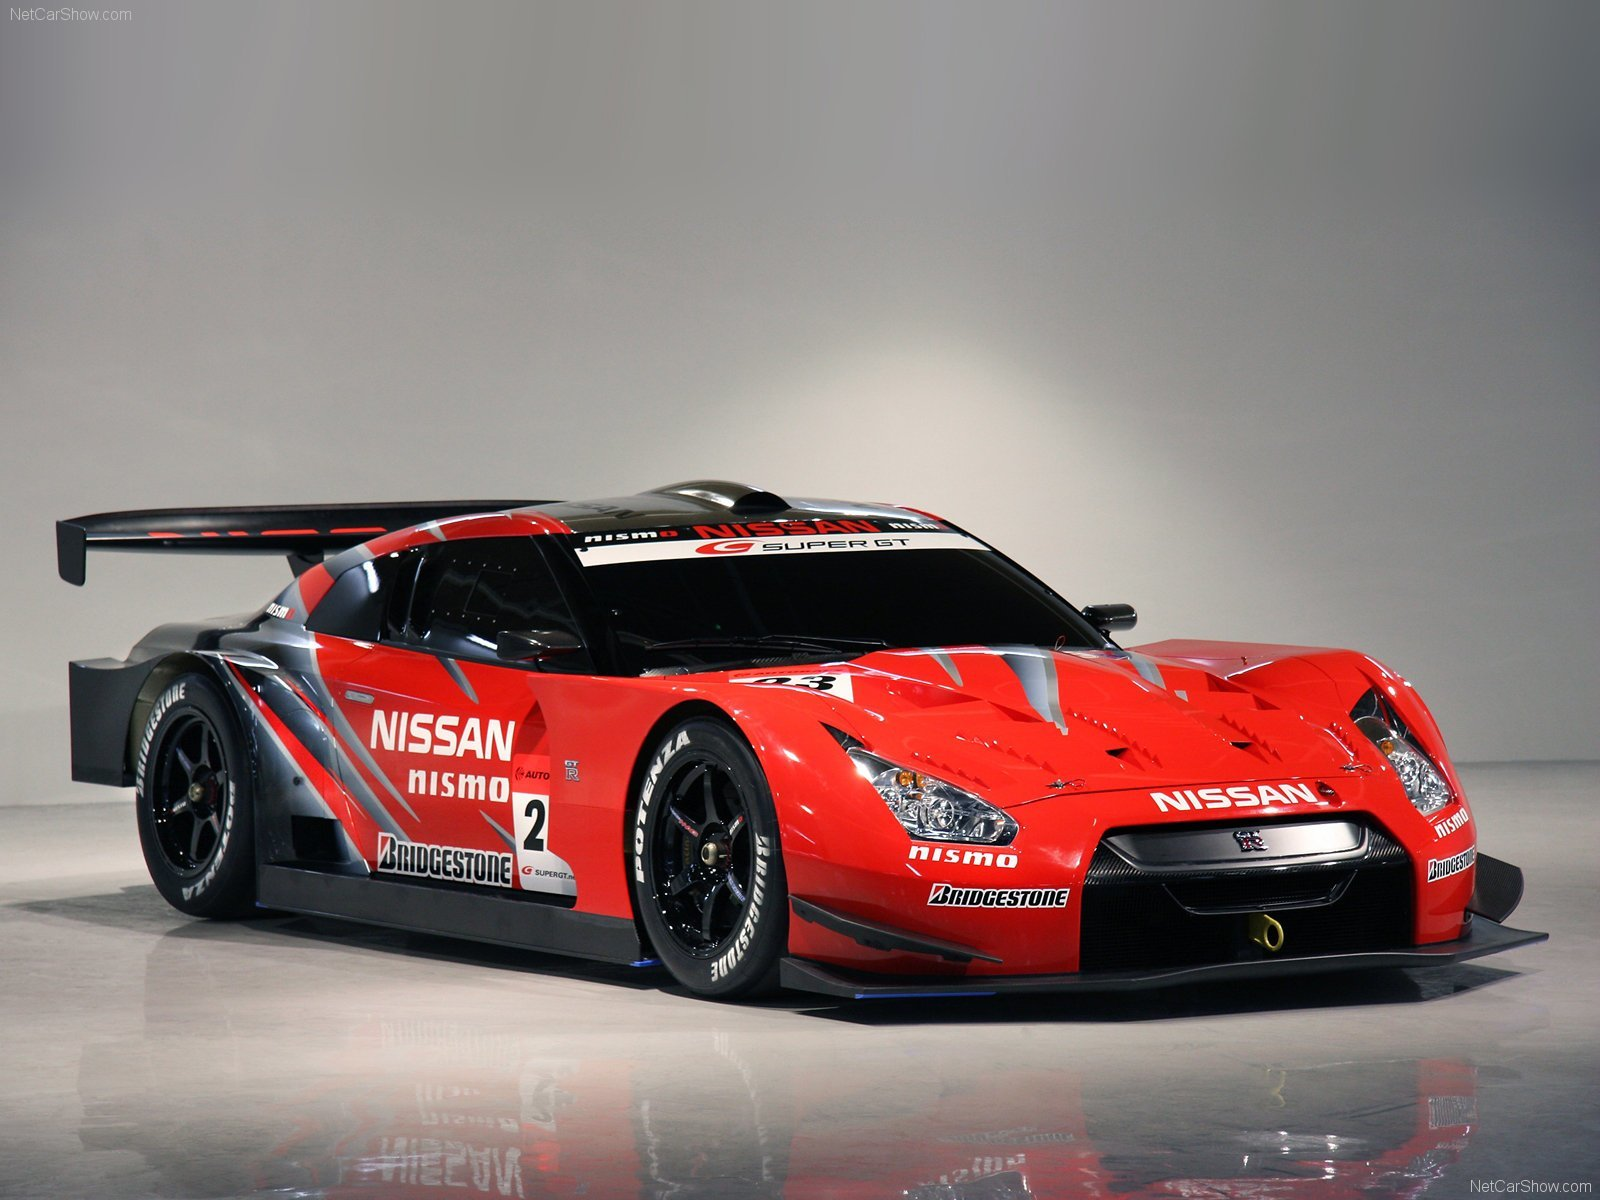 Latest Nissan Gt R Gt500 Photos Photogallery With 8 Pics Free Download